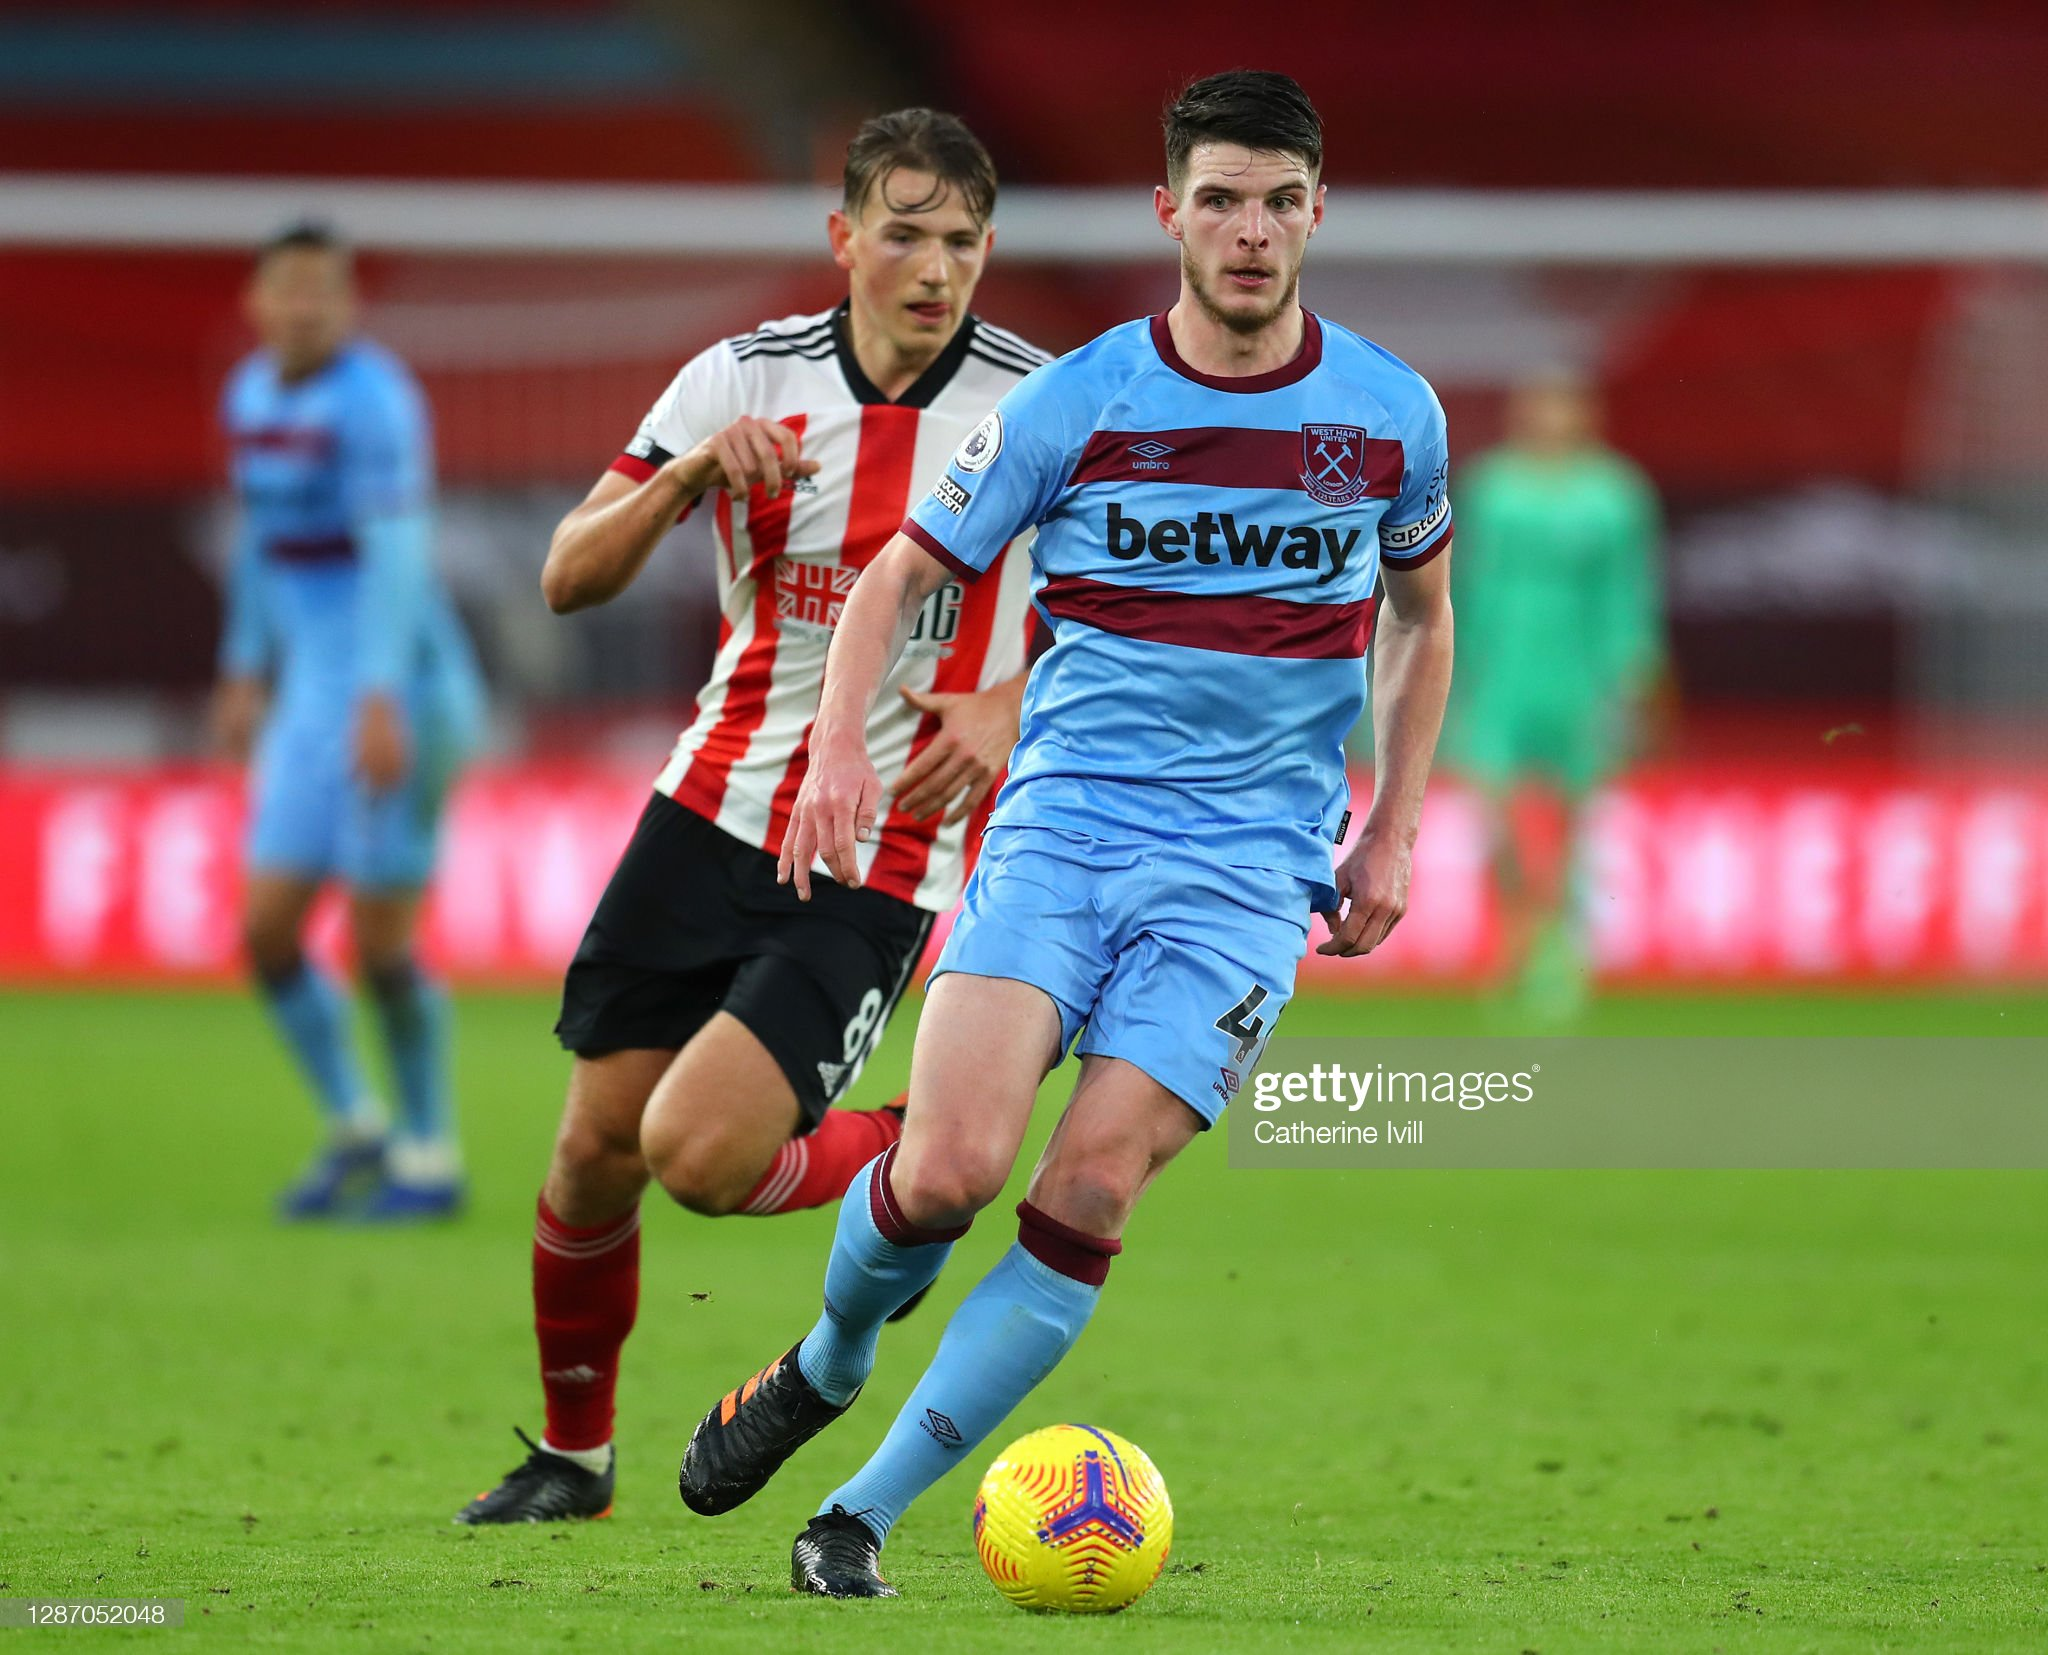 West Ham vs Sheffield United preview, prediction and odds